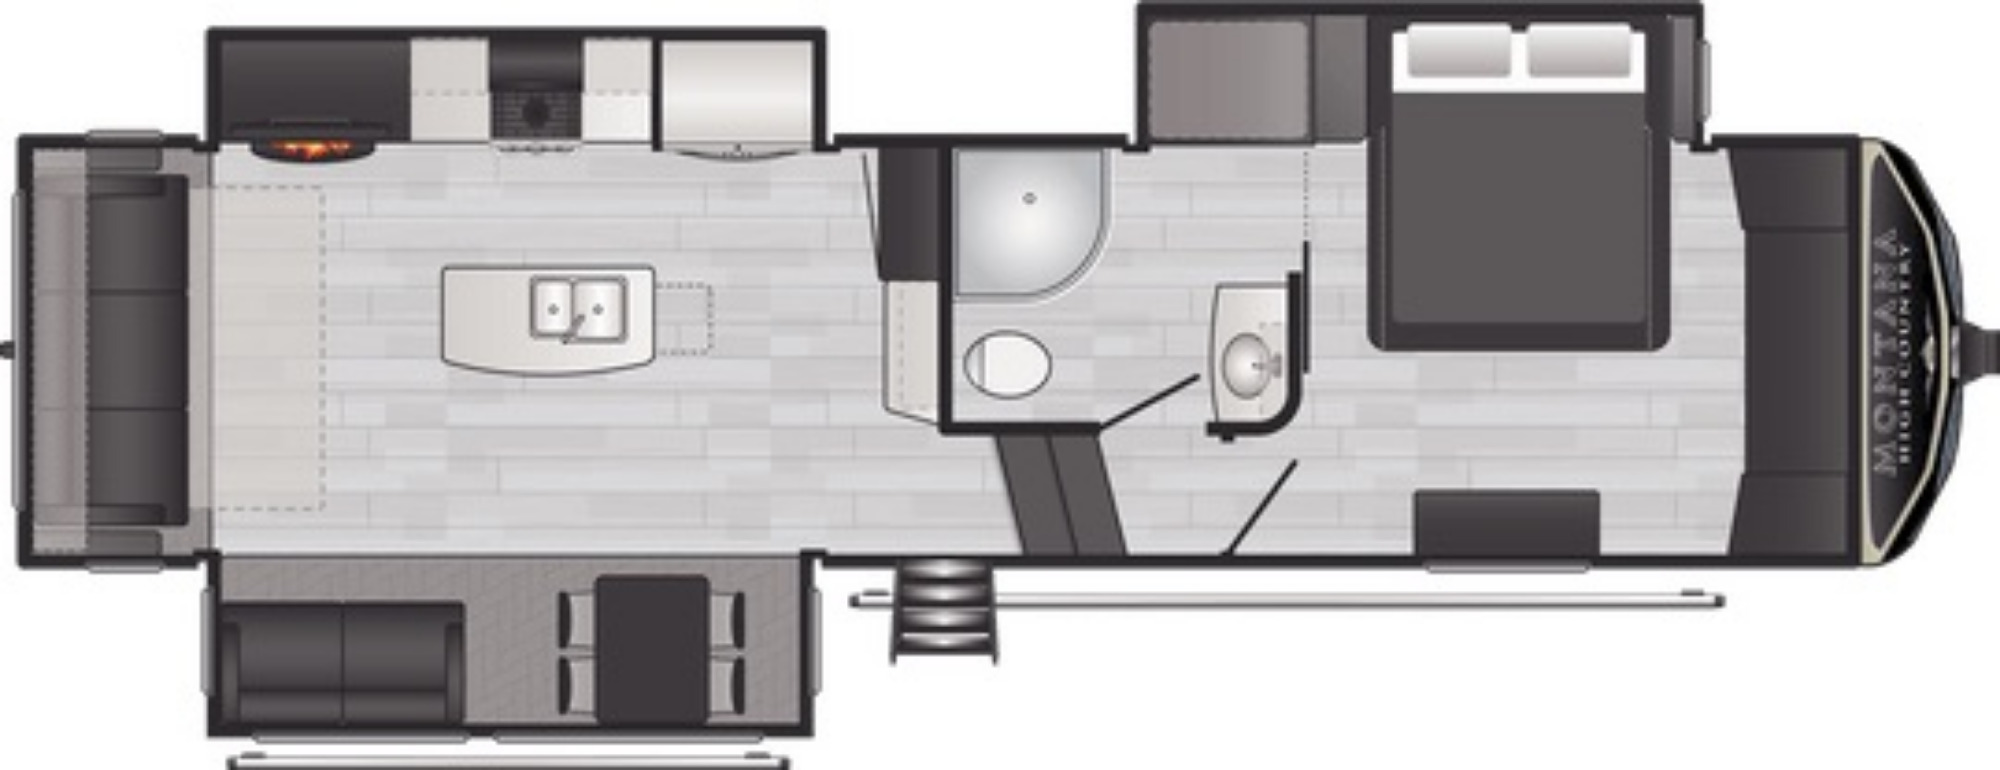 View Floor Plan for 2021 KEYSTONE MONTANA HIGH COUNTRY 294RL